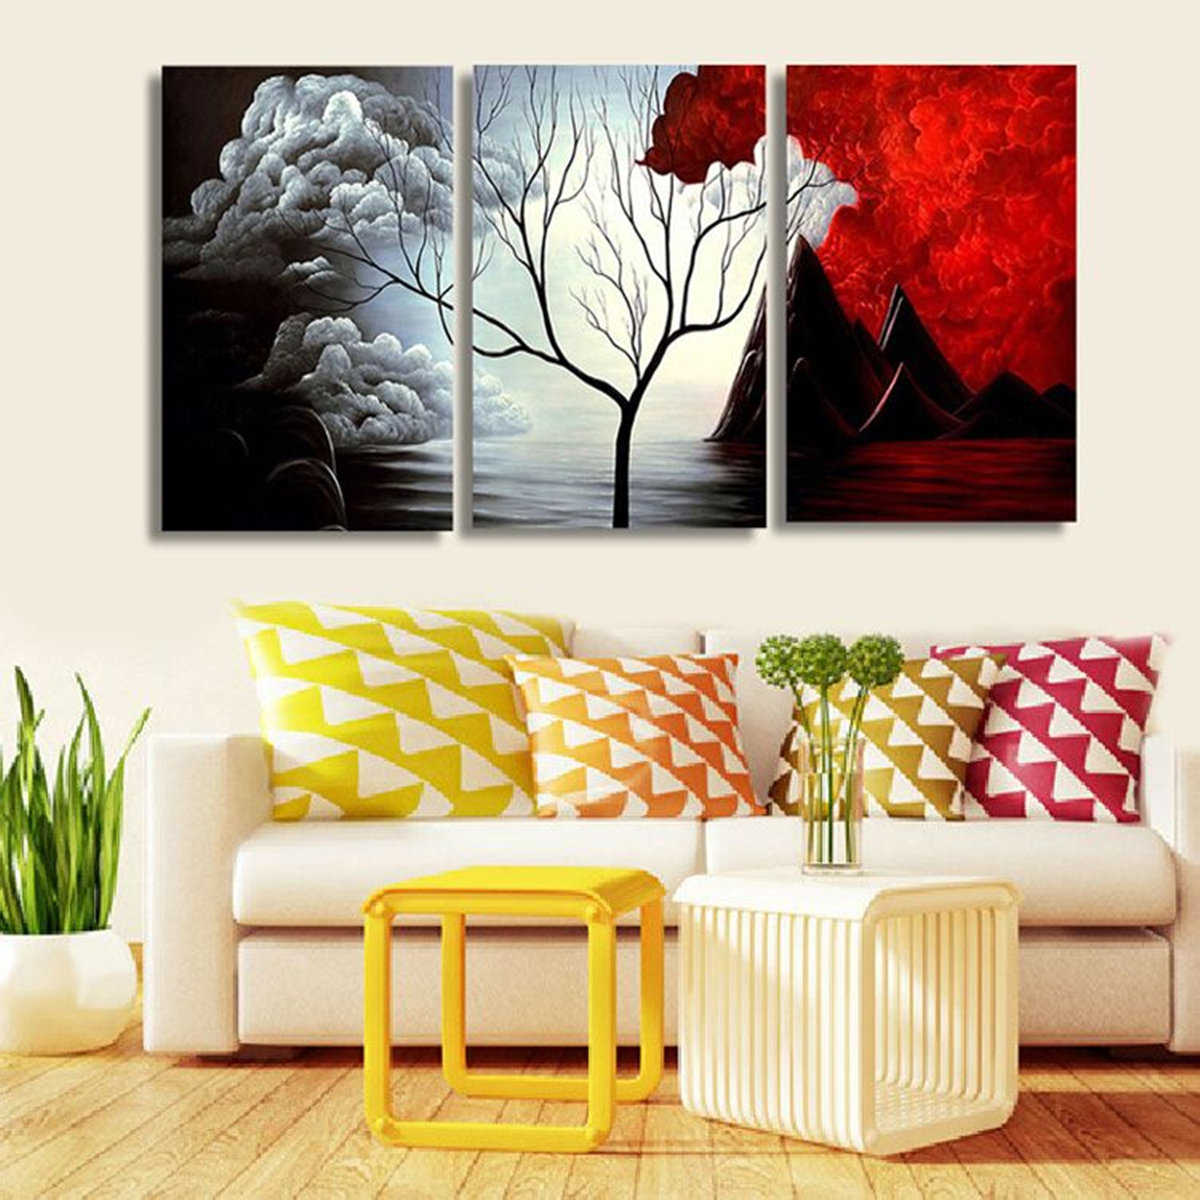 Awesome Living Room Canvas Wall Art Of Pcs Unframed Abstract Landscape Painting Home